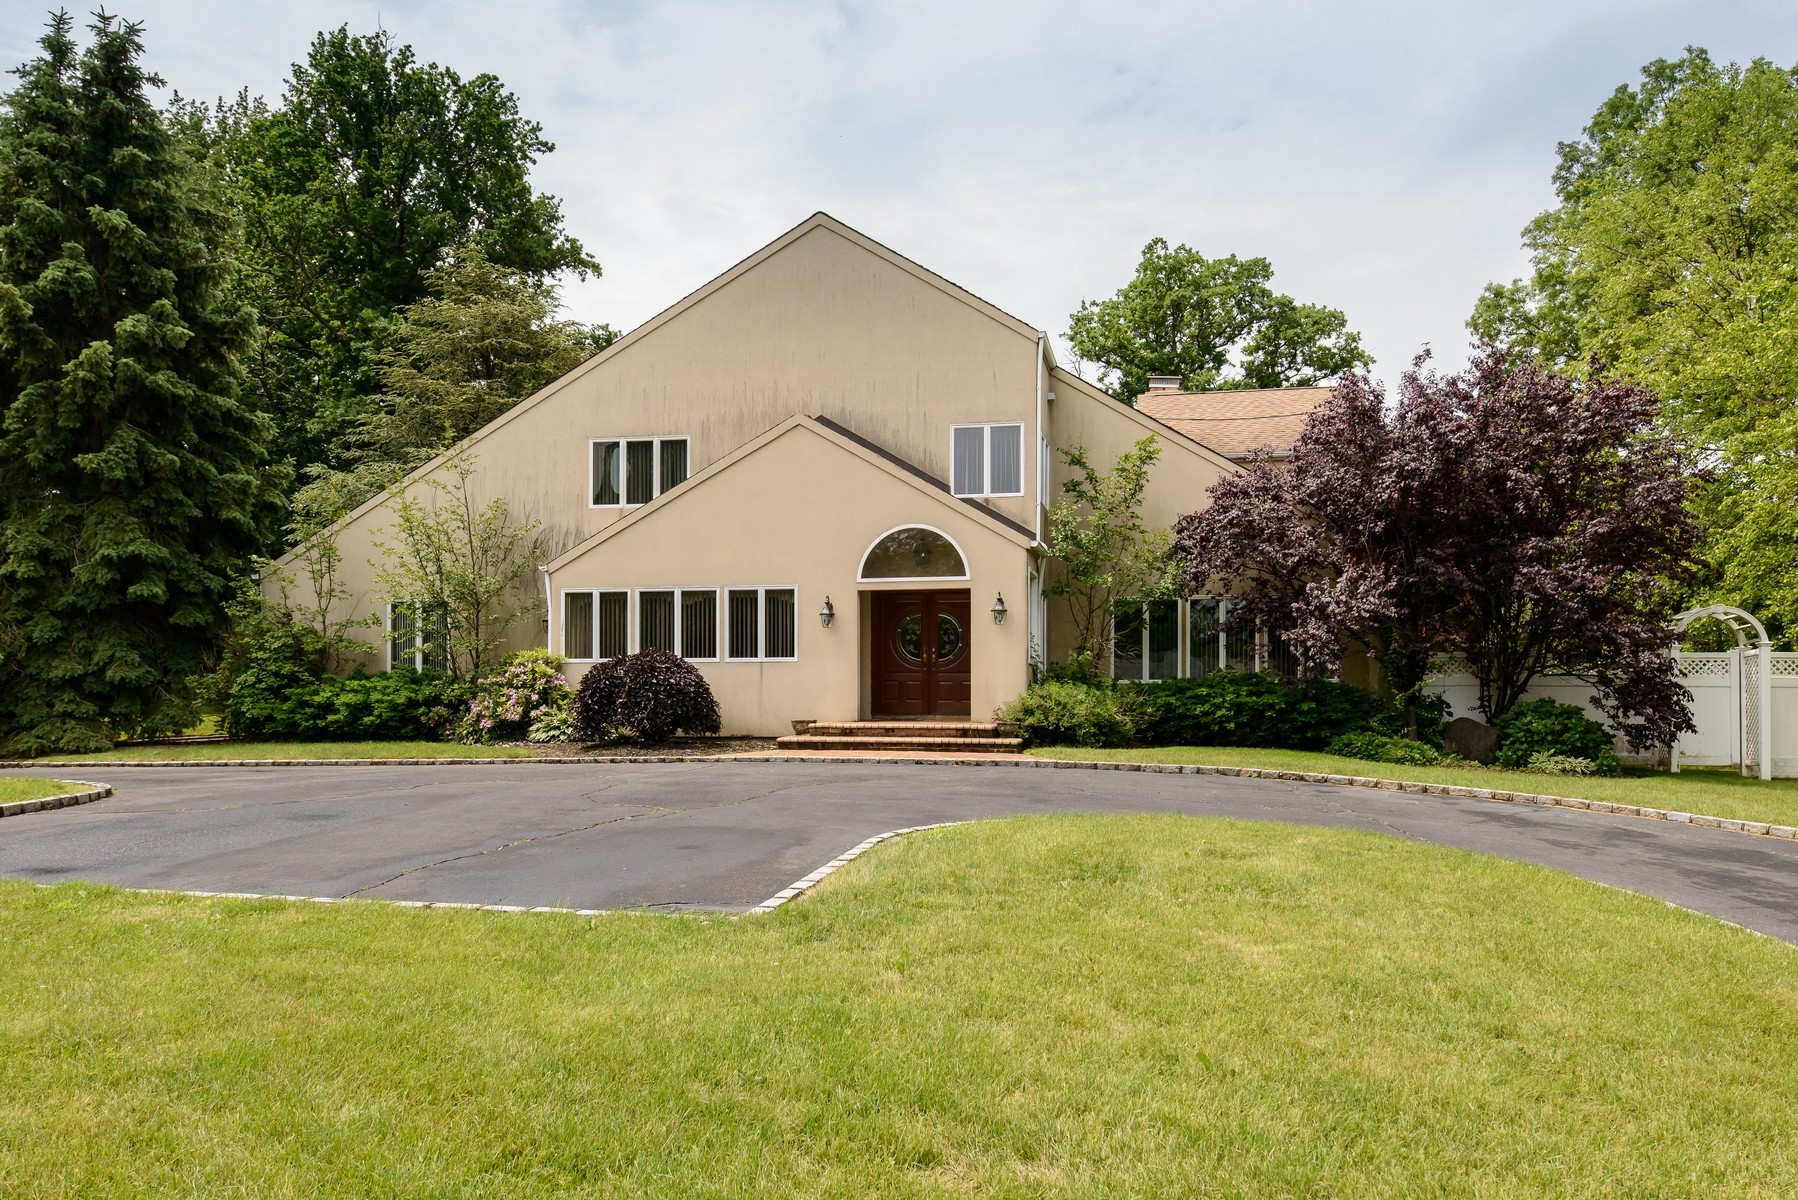 Single Family Home for Sale at Colonial 7 Beatrice Ln Glen Cove, New York 11542 United States